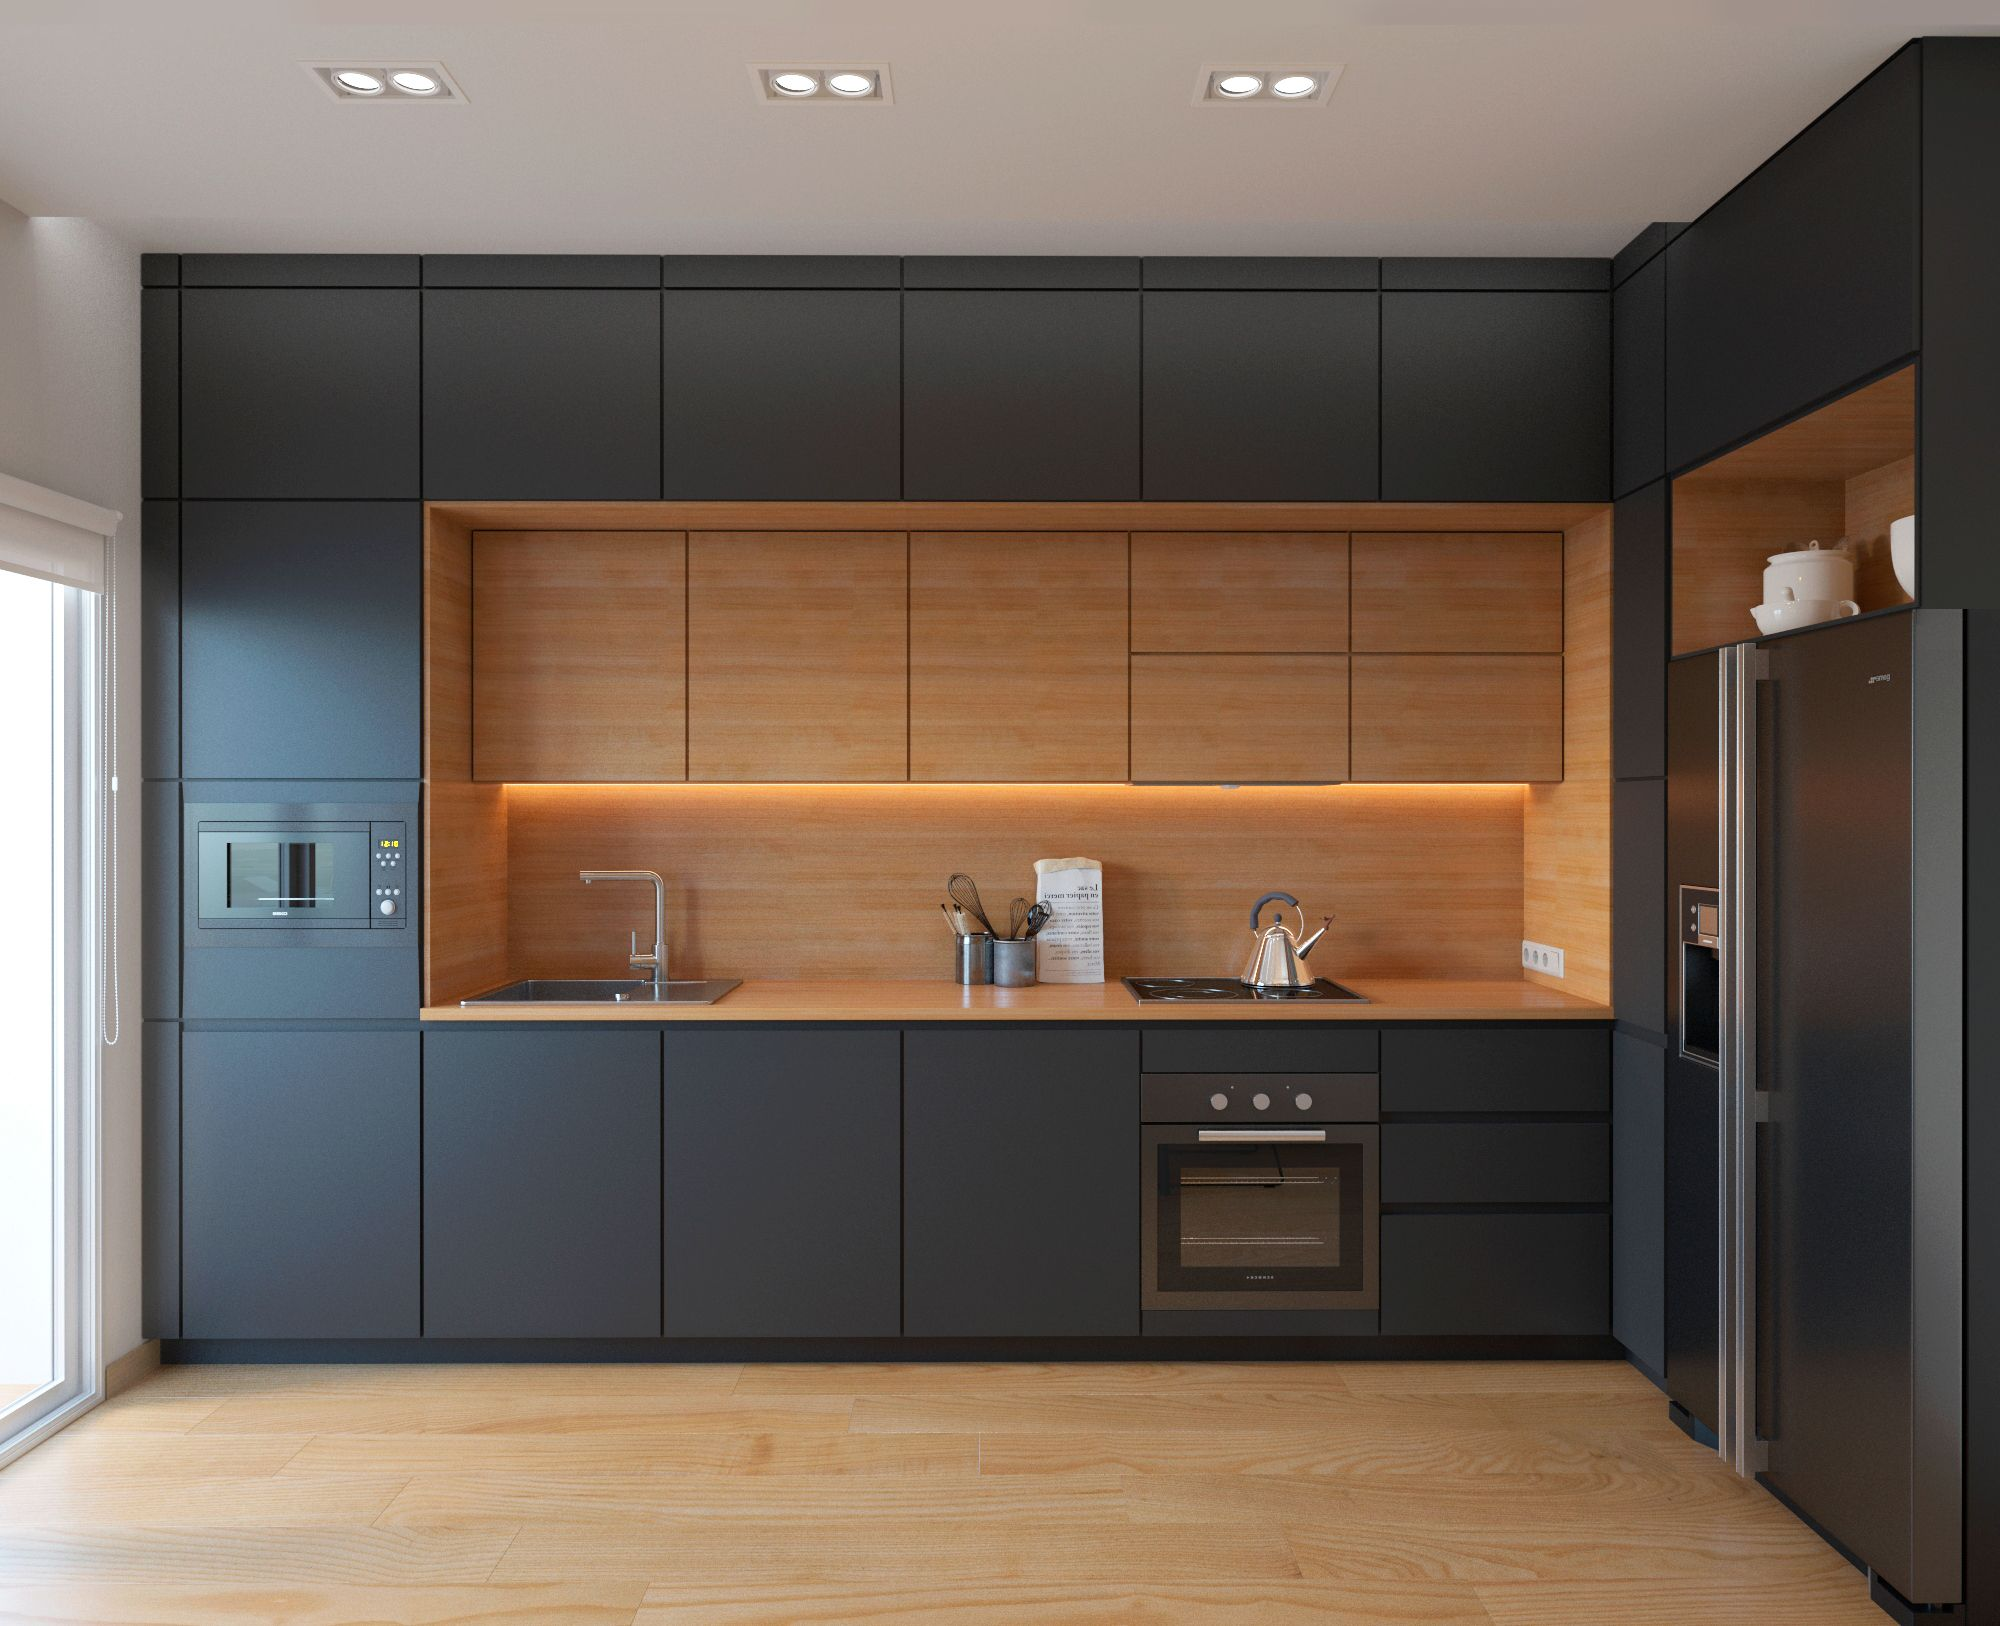 60 Awesome Kitchen Cabinetry Ideas and Design Behance Kitchens